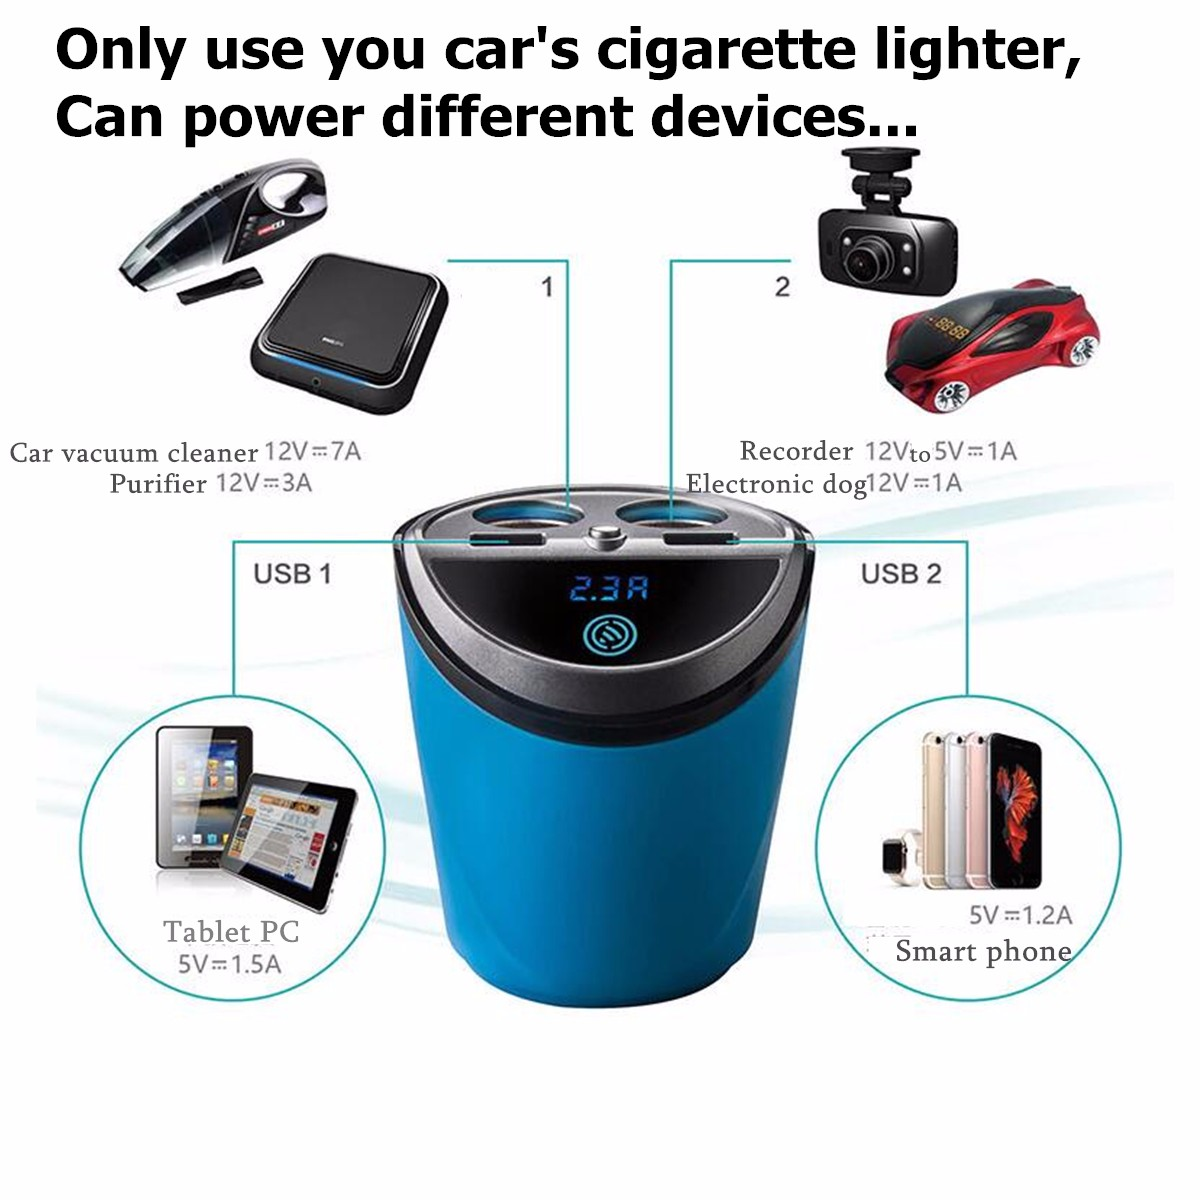 Dual USB Car Charger With Voltage Current Display Car Cup Holder 2 Port Car Cigarette Lighters